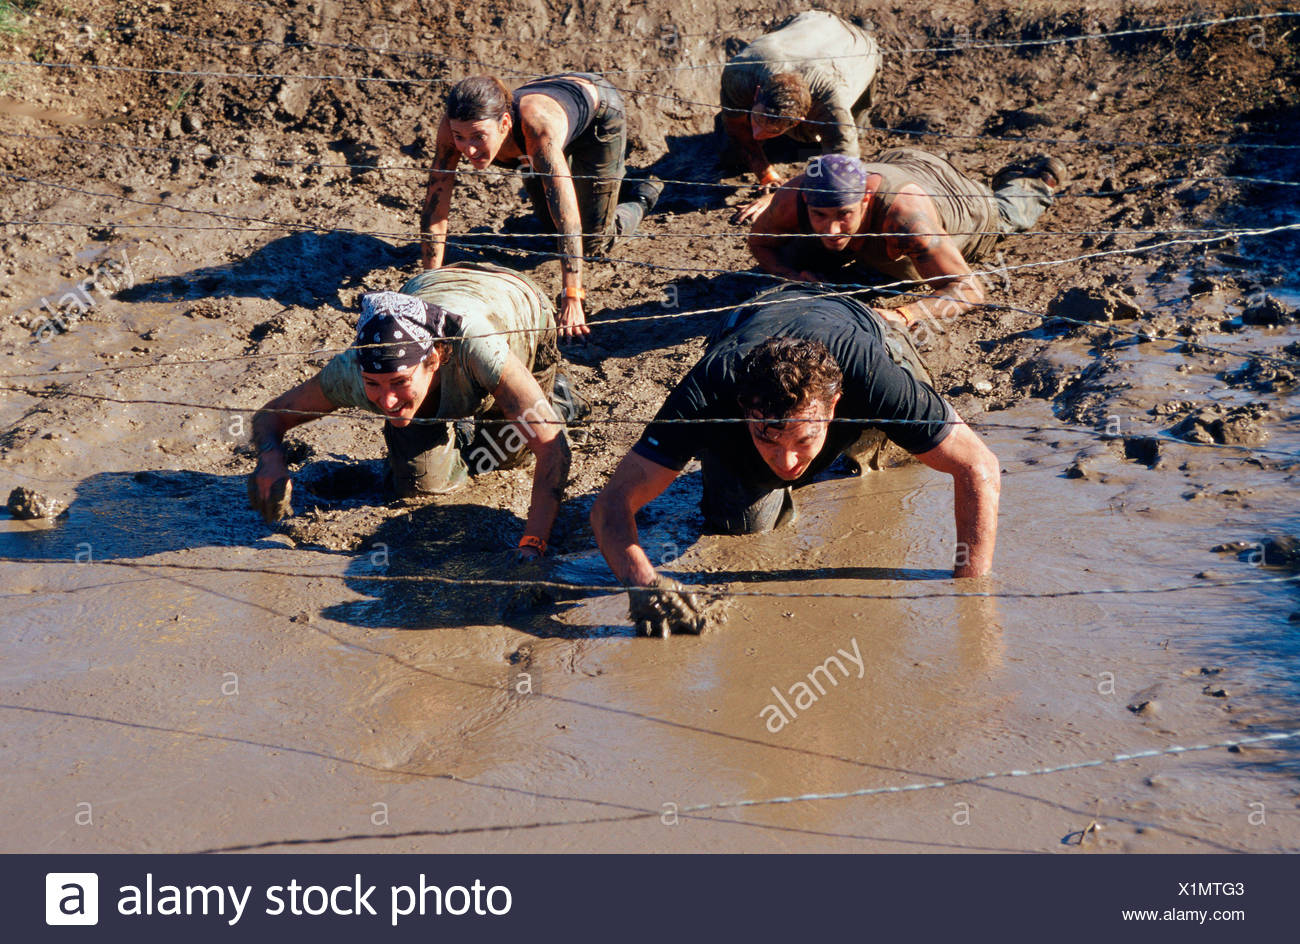 Group of people army crawling on their bellies under steel wires through the mud - Stock Image